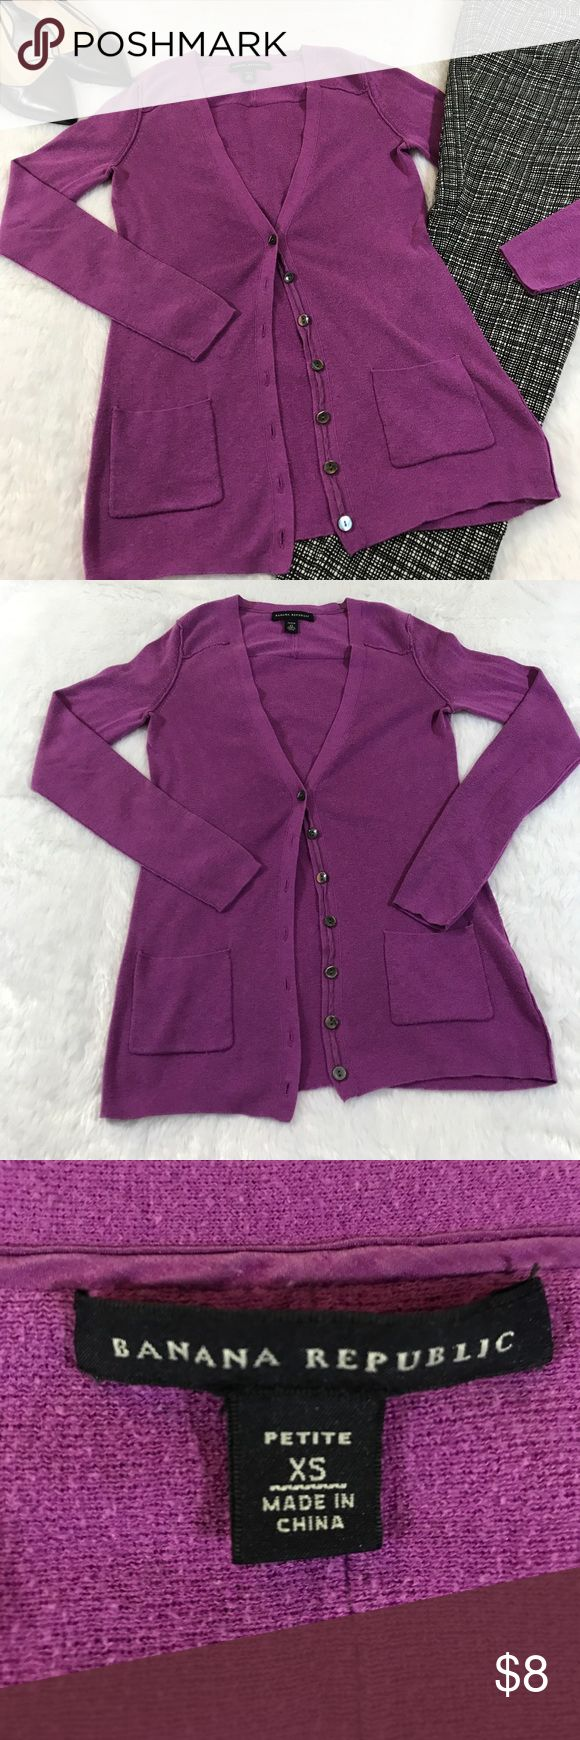 """🎃CCO🎃Banana Republic XS Petite cardigan Beautiful purplish pink colored v-neck cardigan. It has 6 shell buttons, and two pockets at the waist. Measurements flat are approximately: chest: 14.5"""" Length: 23"""" low price due to wear, but there is still life left. (B) Banana Republic Sweaters Cardigans"""